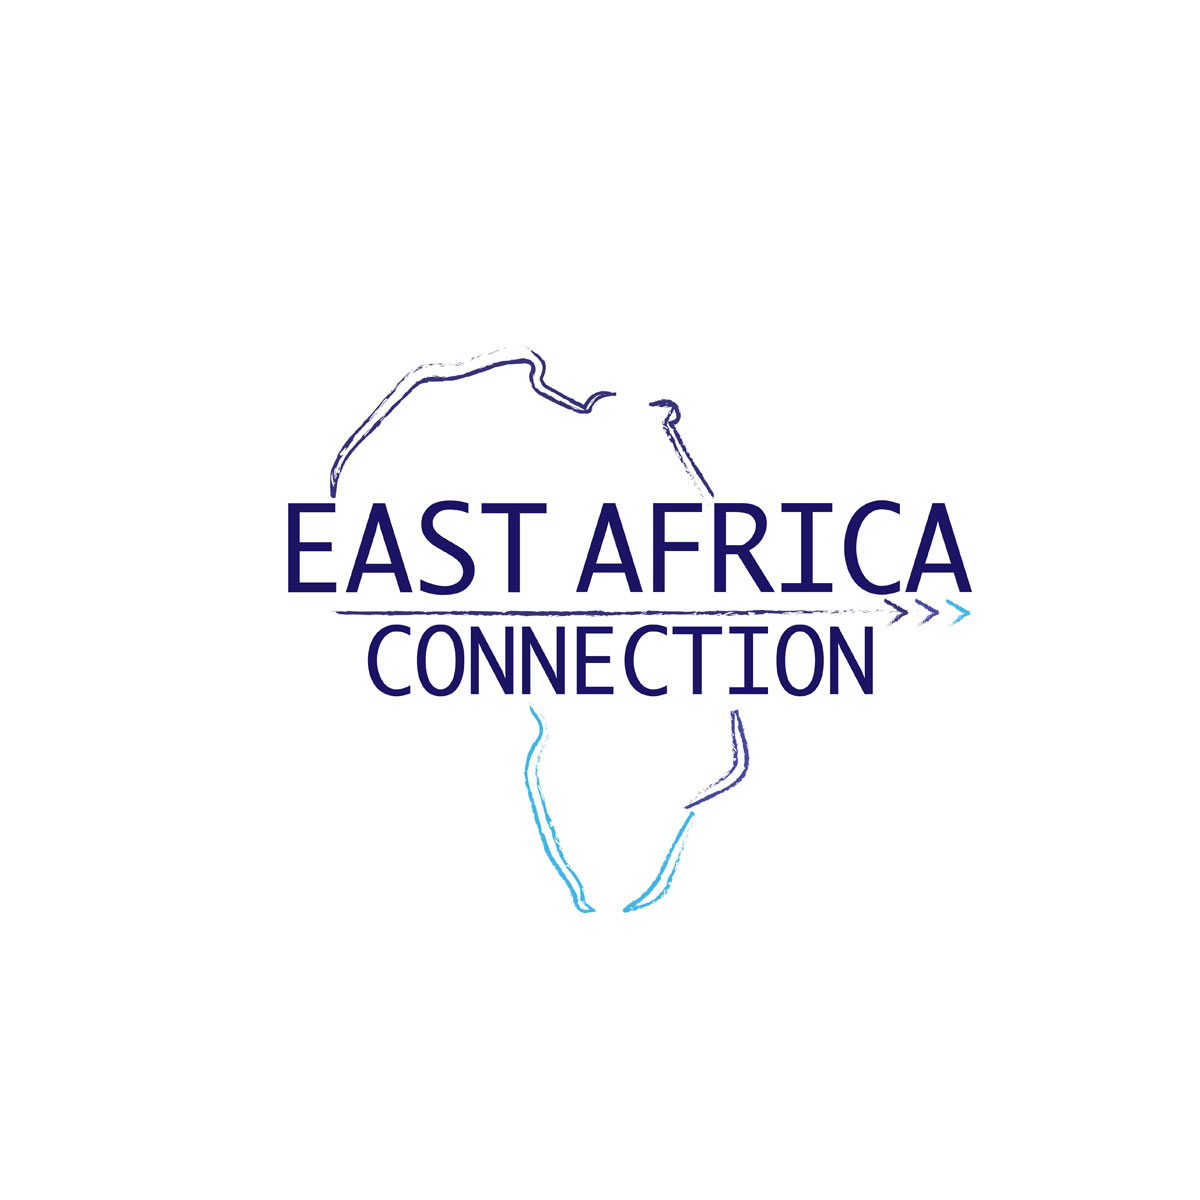 East Africa Connection logo